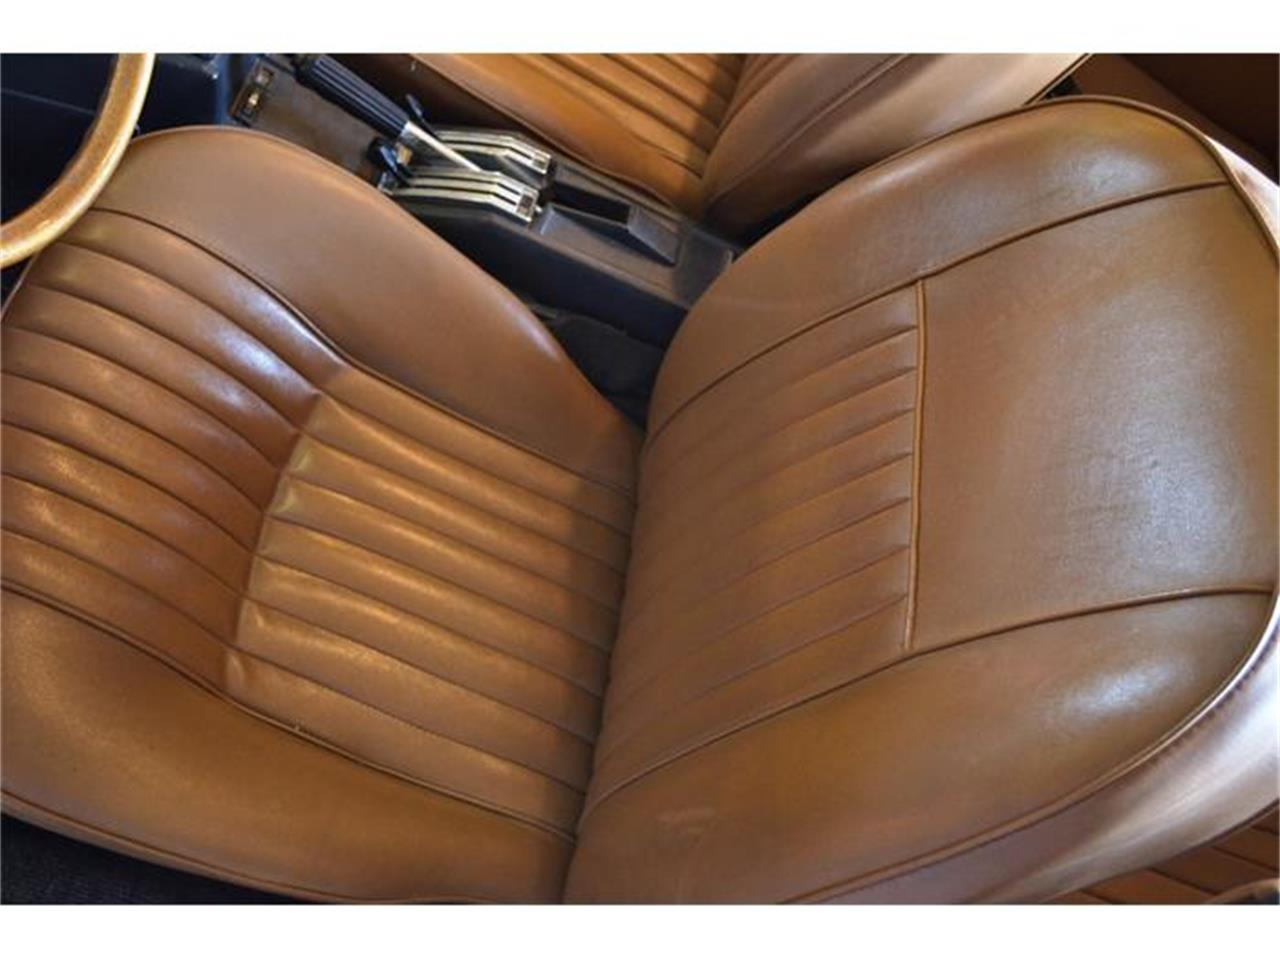 1977 Fiat 124 for sale in Barrington, IL – photo 28